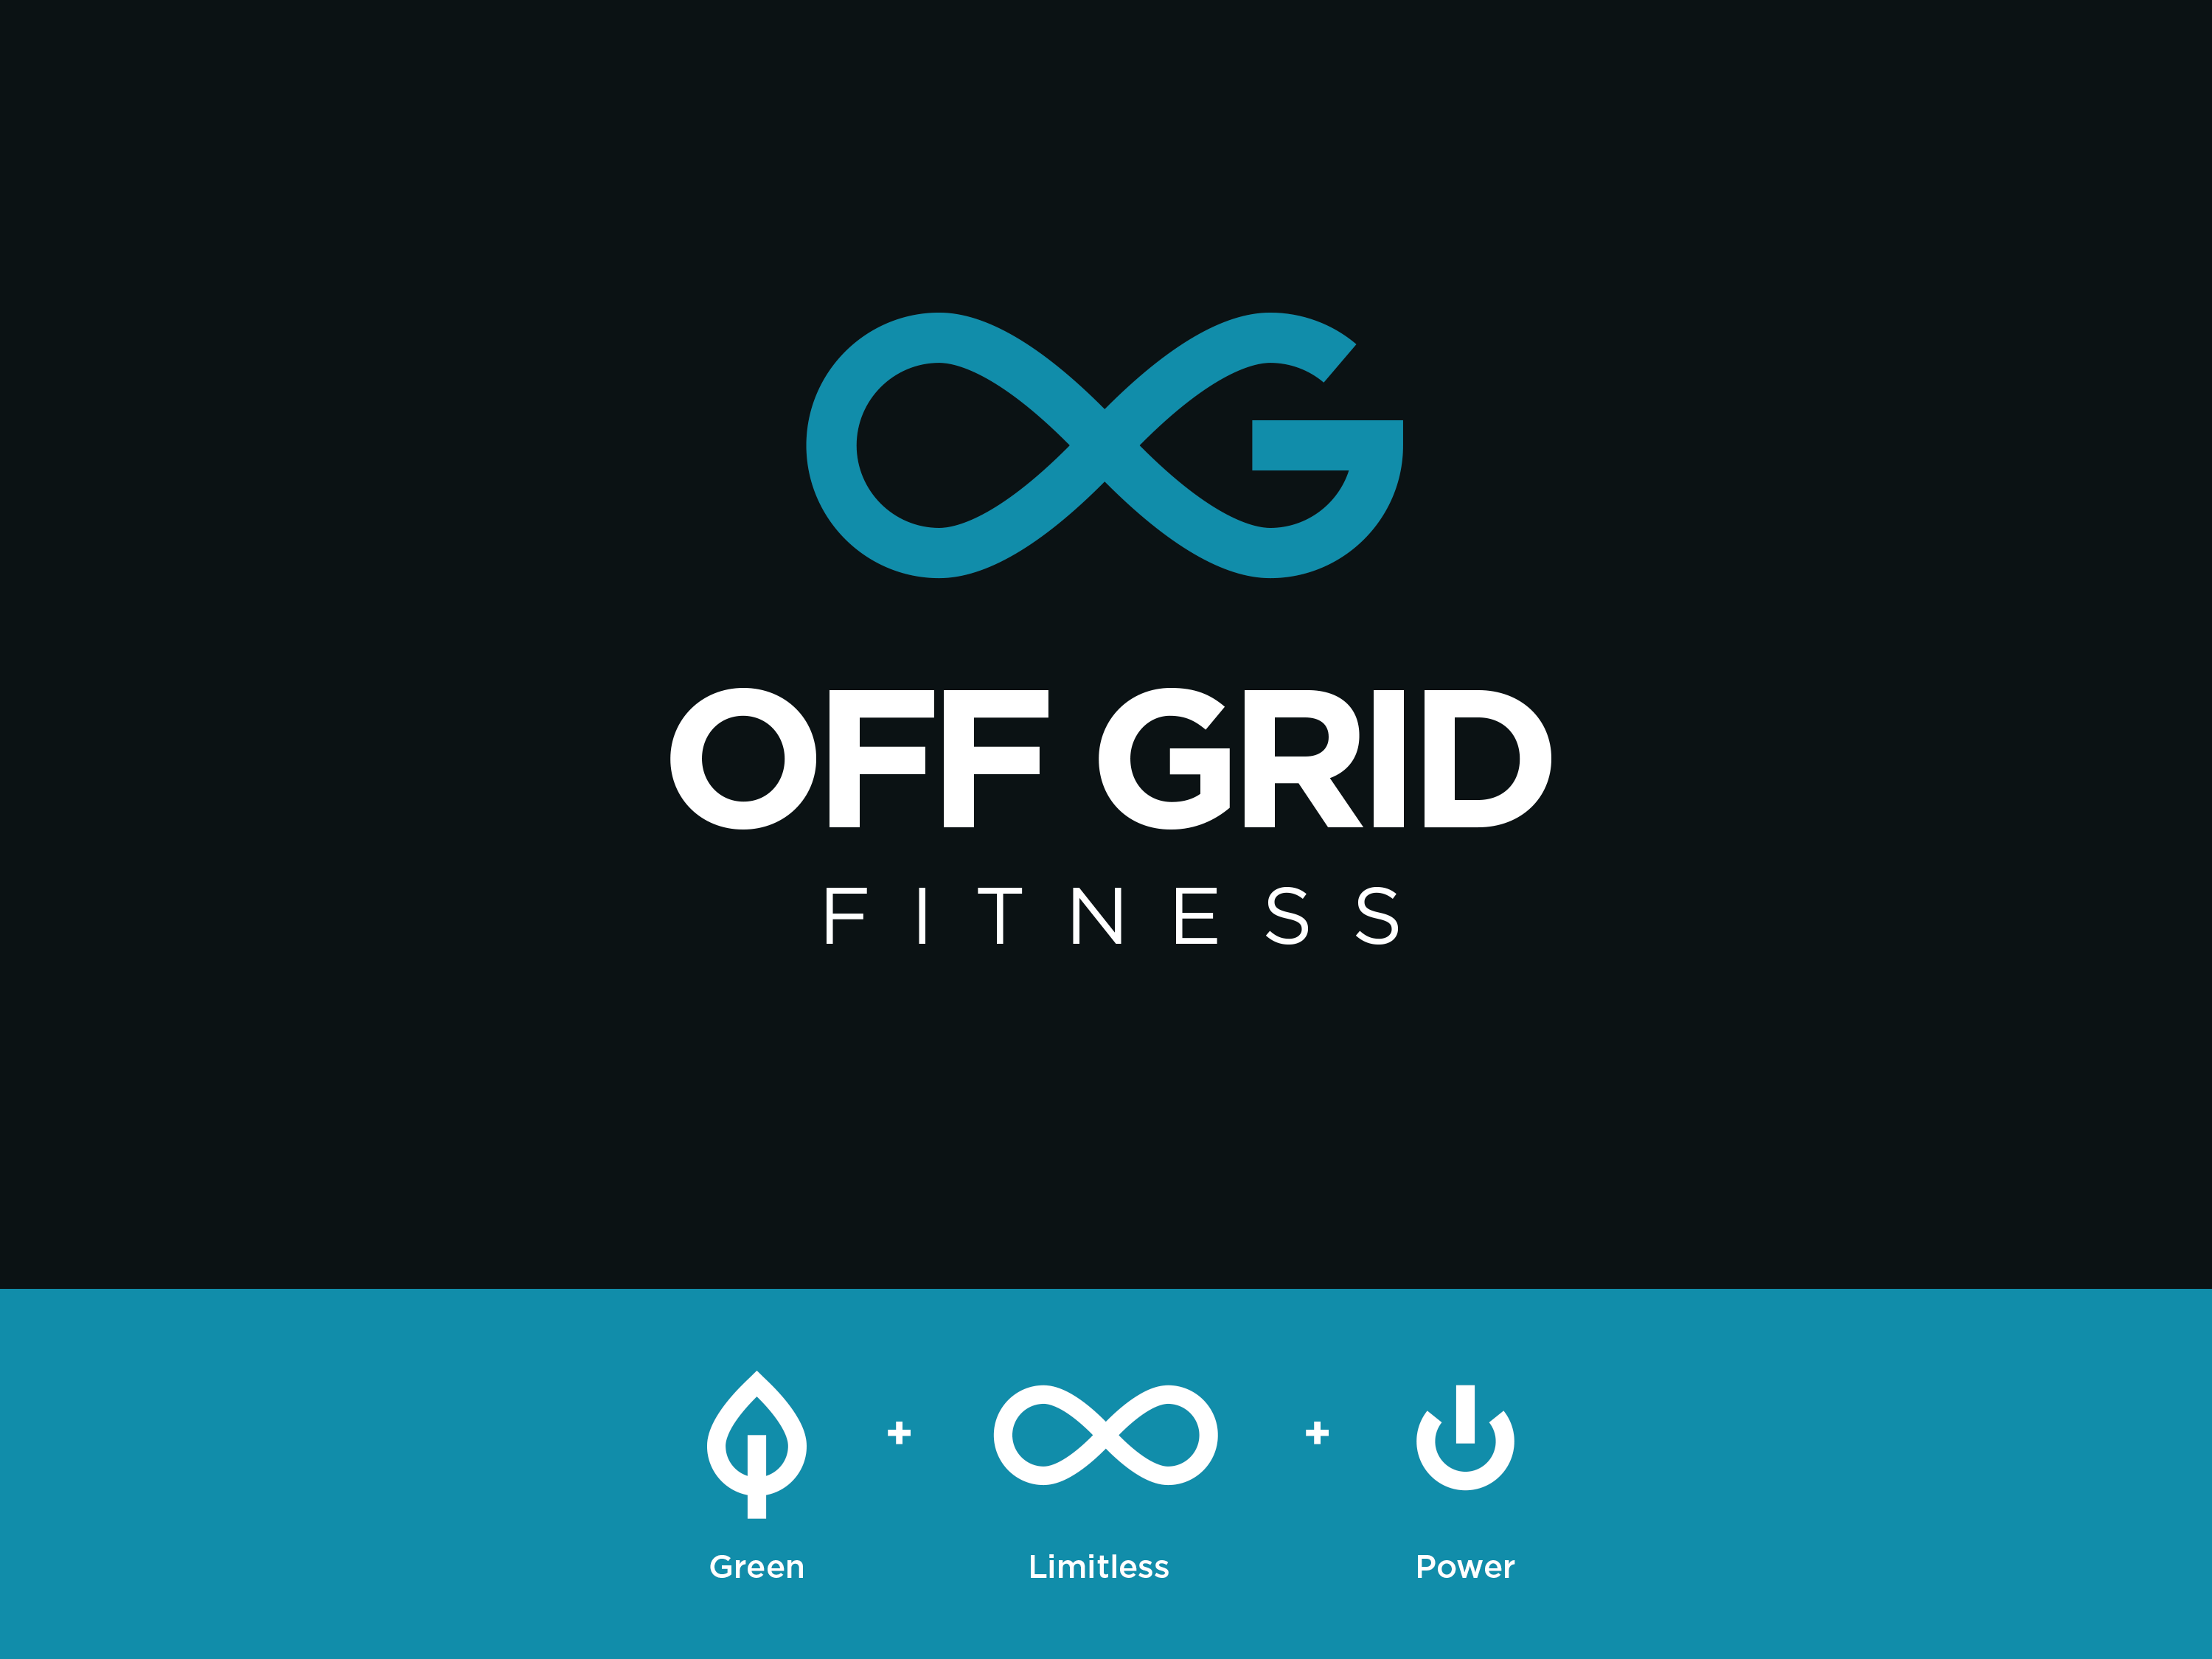 off grid fitness logo by adam dorsey on dribbble off grid fitness logo by adam dorsey on